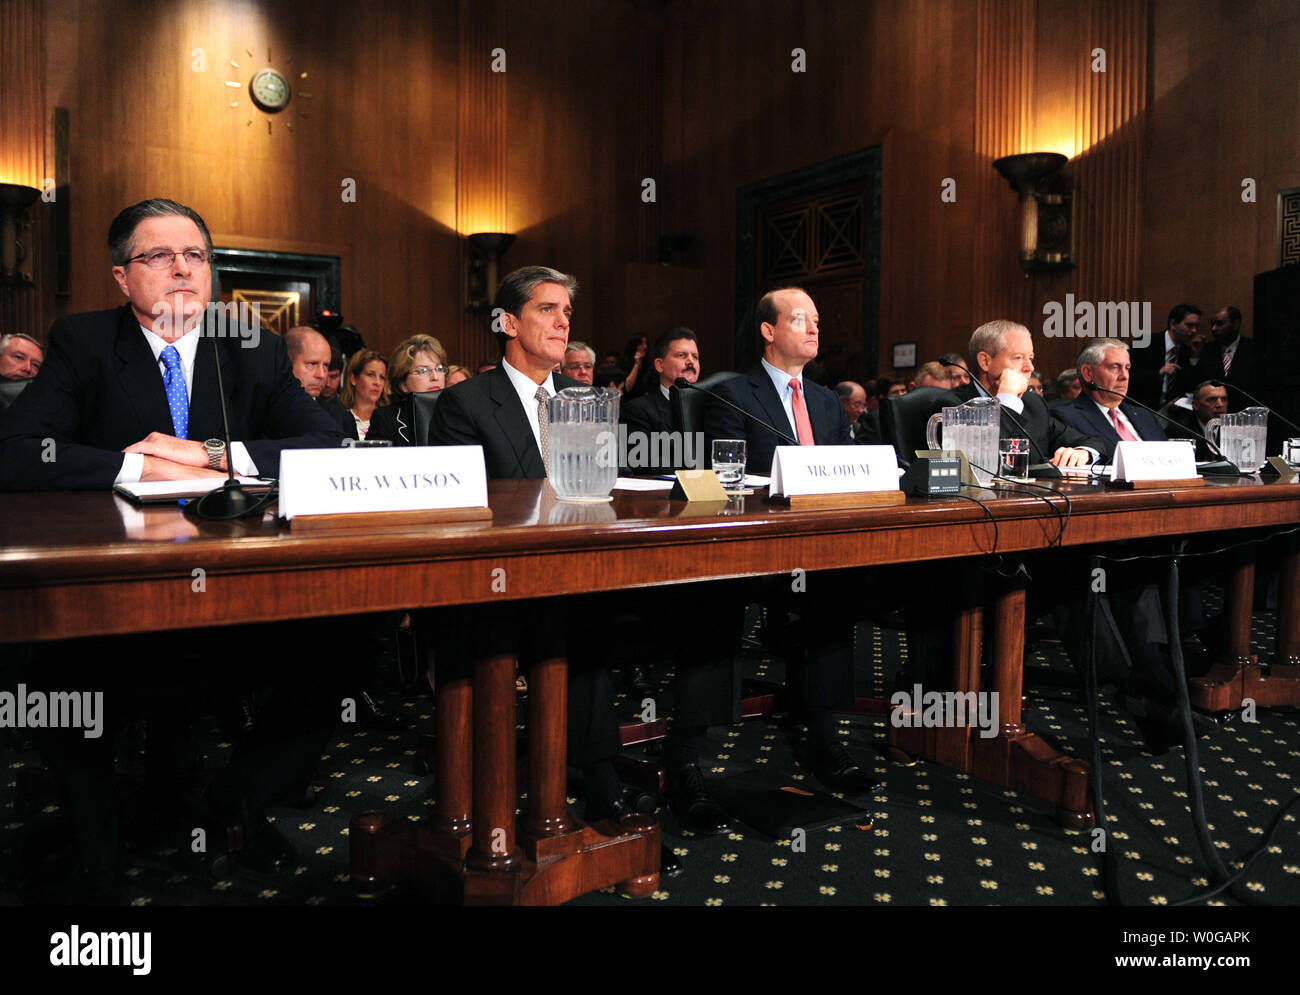 Chevron CEO and Chairman John Watson, Shell Oil U.S. President Marvin Odum, BP America Inc. President and Chairman H. Lamar McKay, ConocoPhillips CEO and Chairman James Mulva and Exxon Mobil CEO and Chairman Rex Tillerson testify during a Senate Finance Committee hearing on rising energy prices and oil and gas tax incentives in Washington on May 12, 2011.  UPI/Kevin Dietsch - Stock Image